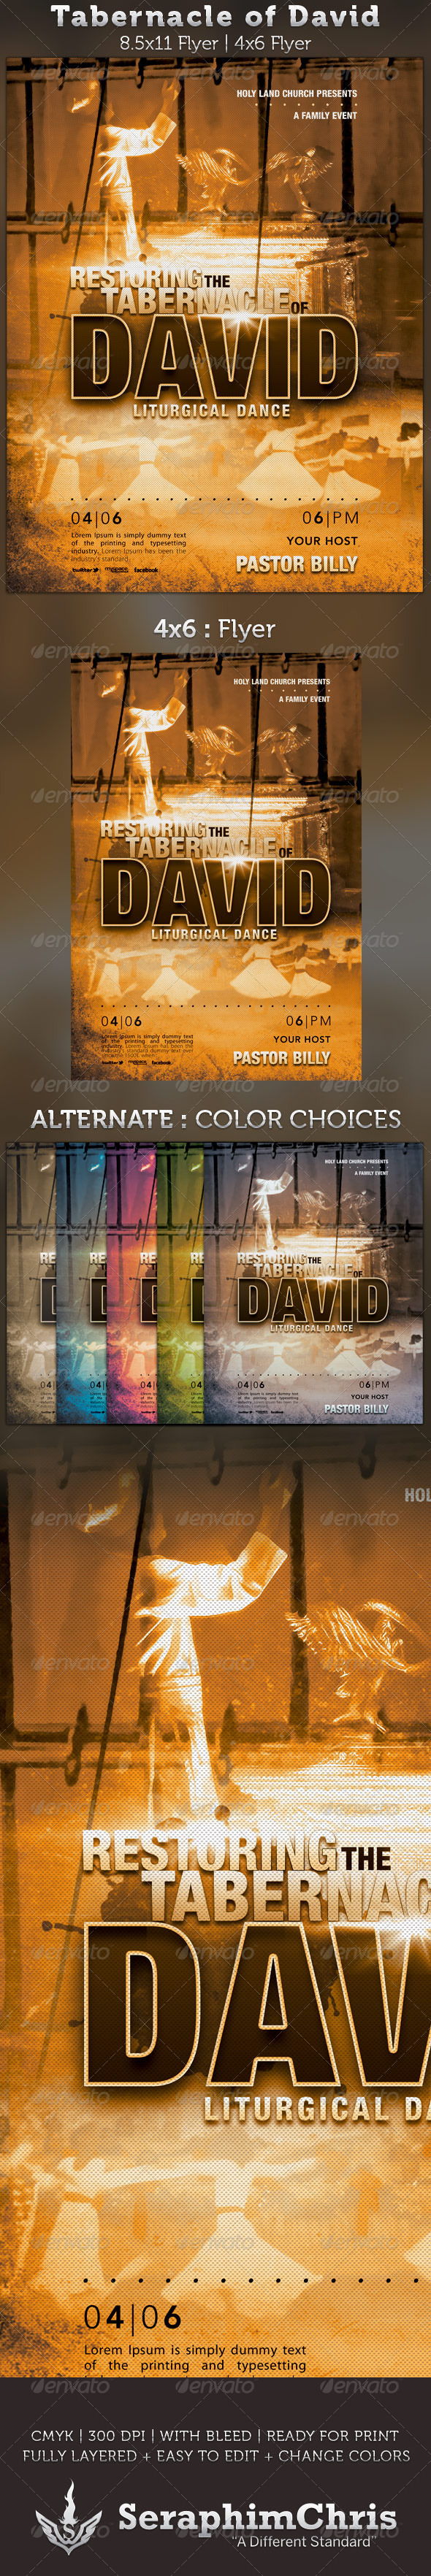 Tabernacle of David Church Flyer Template - Church Flyers